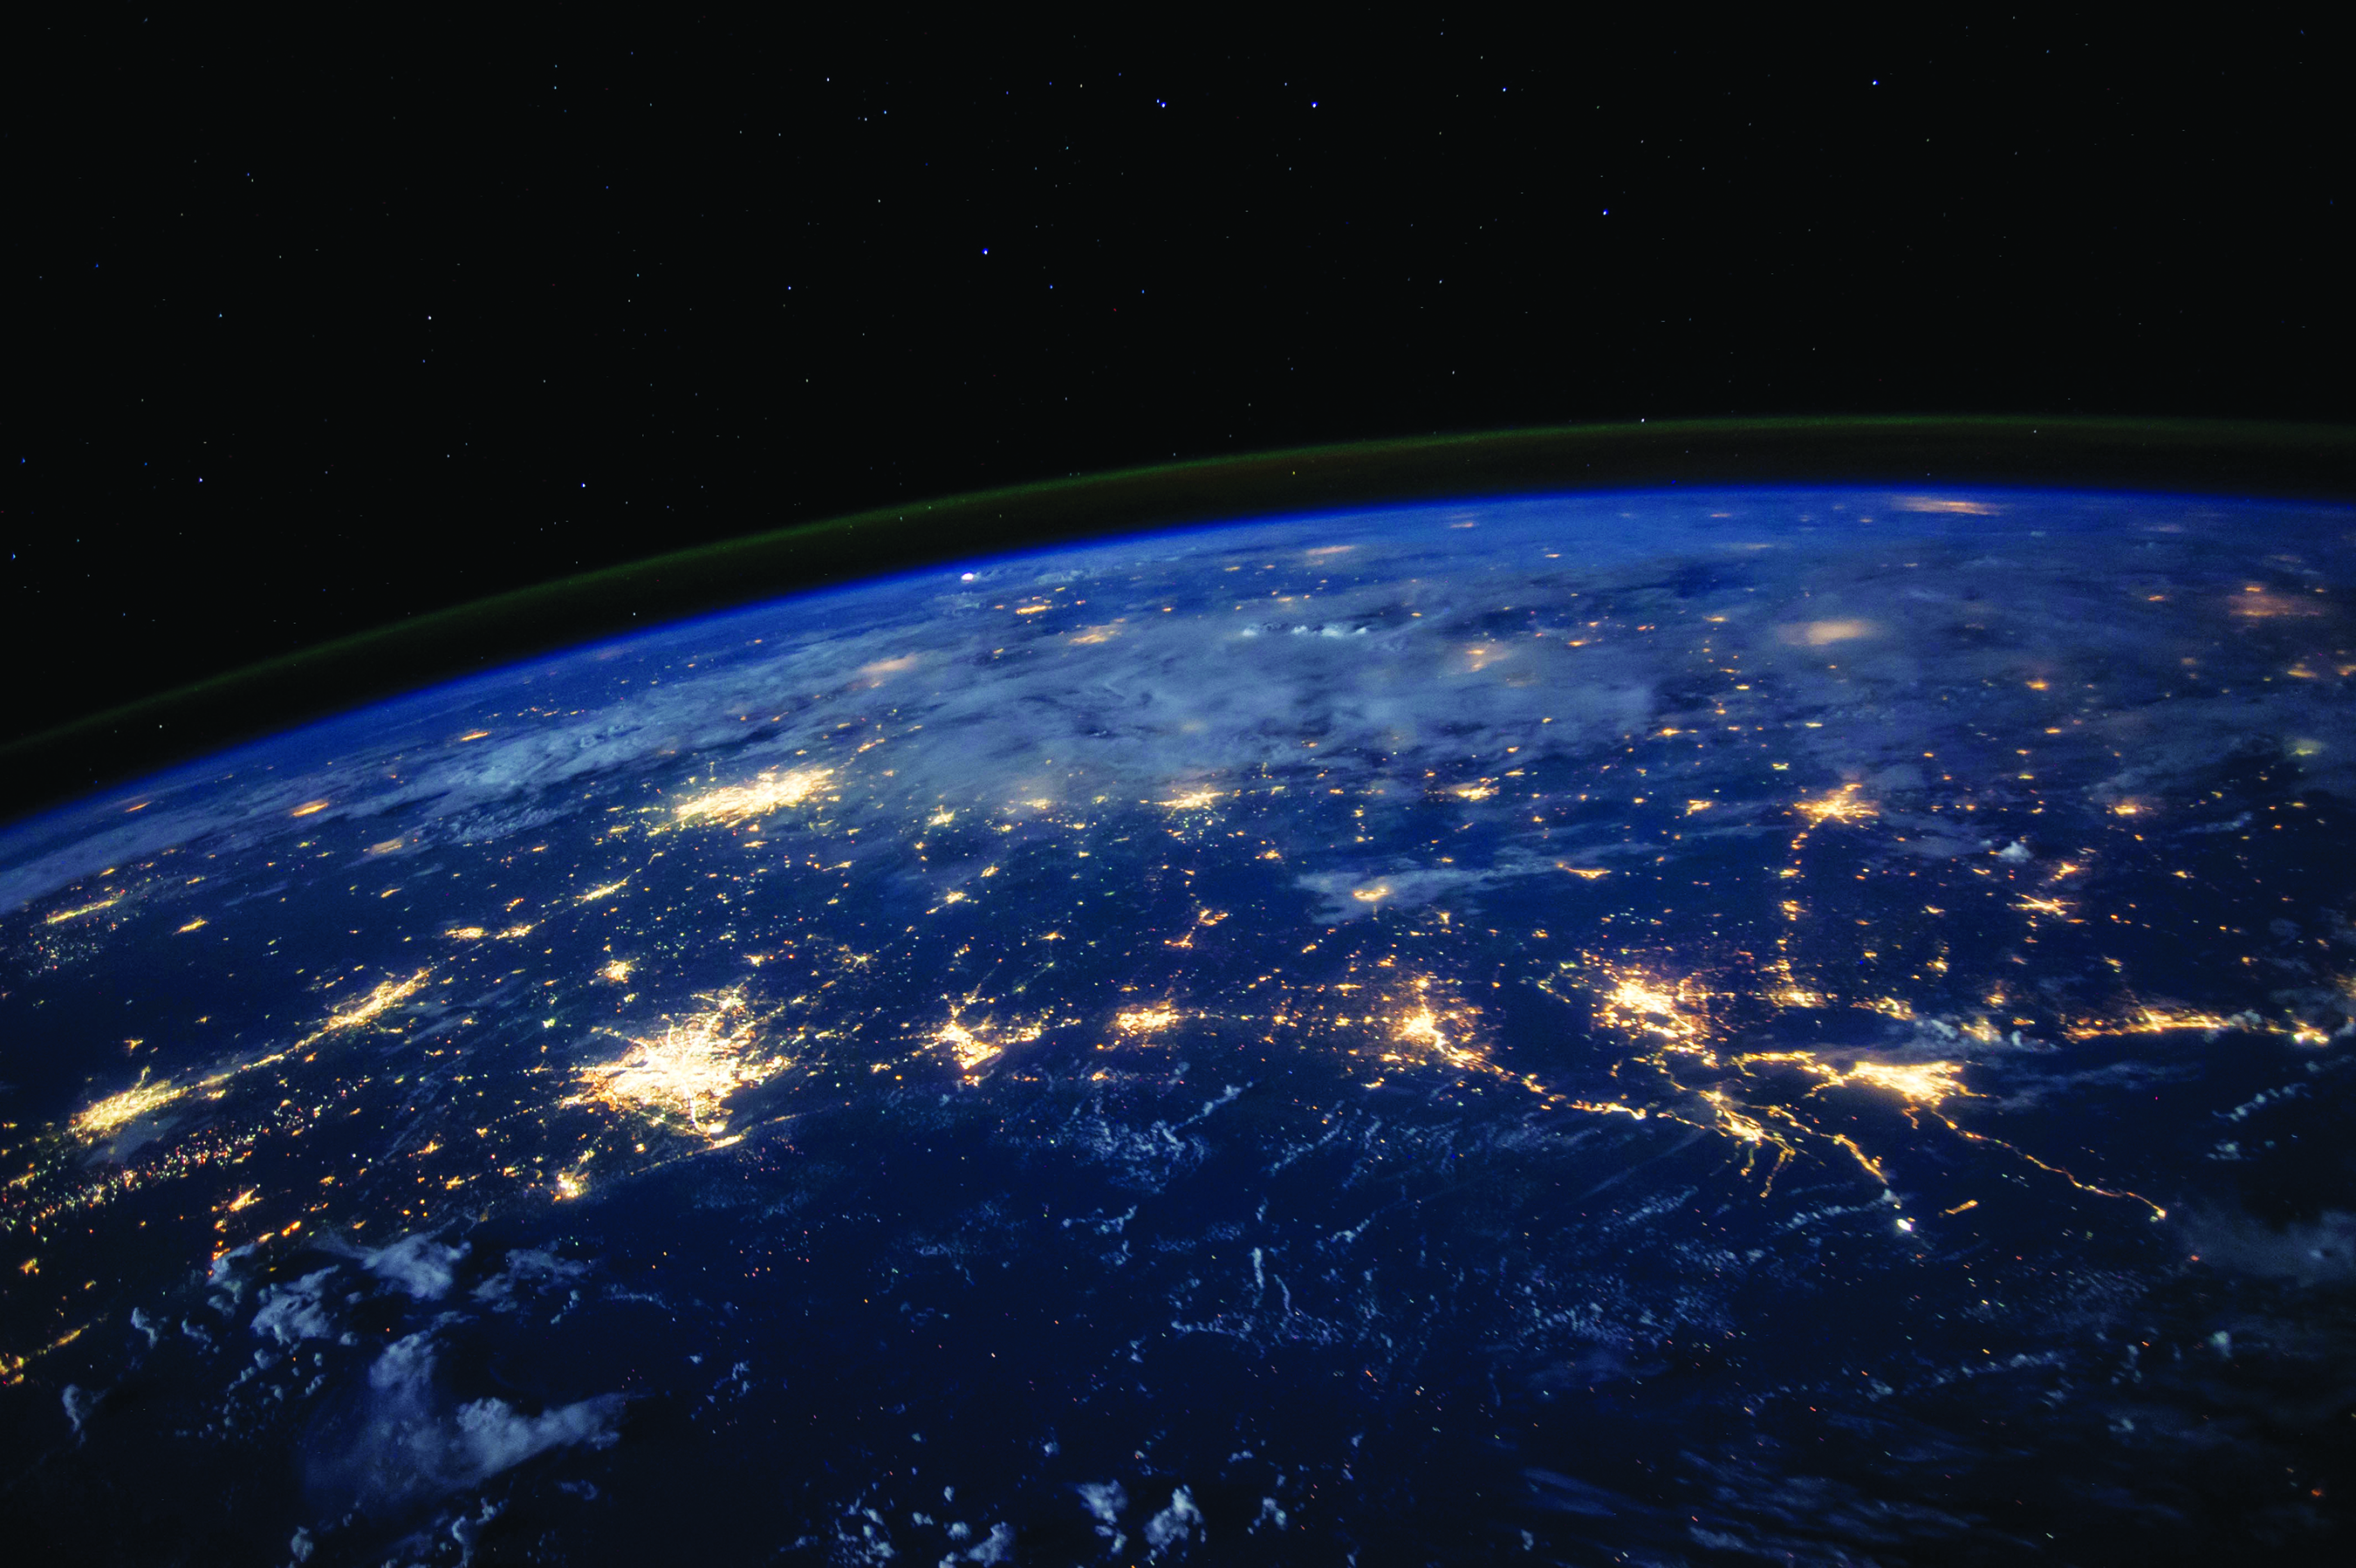 United States at night from space